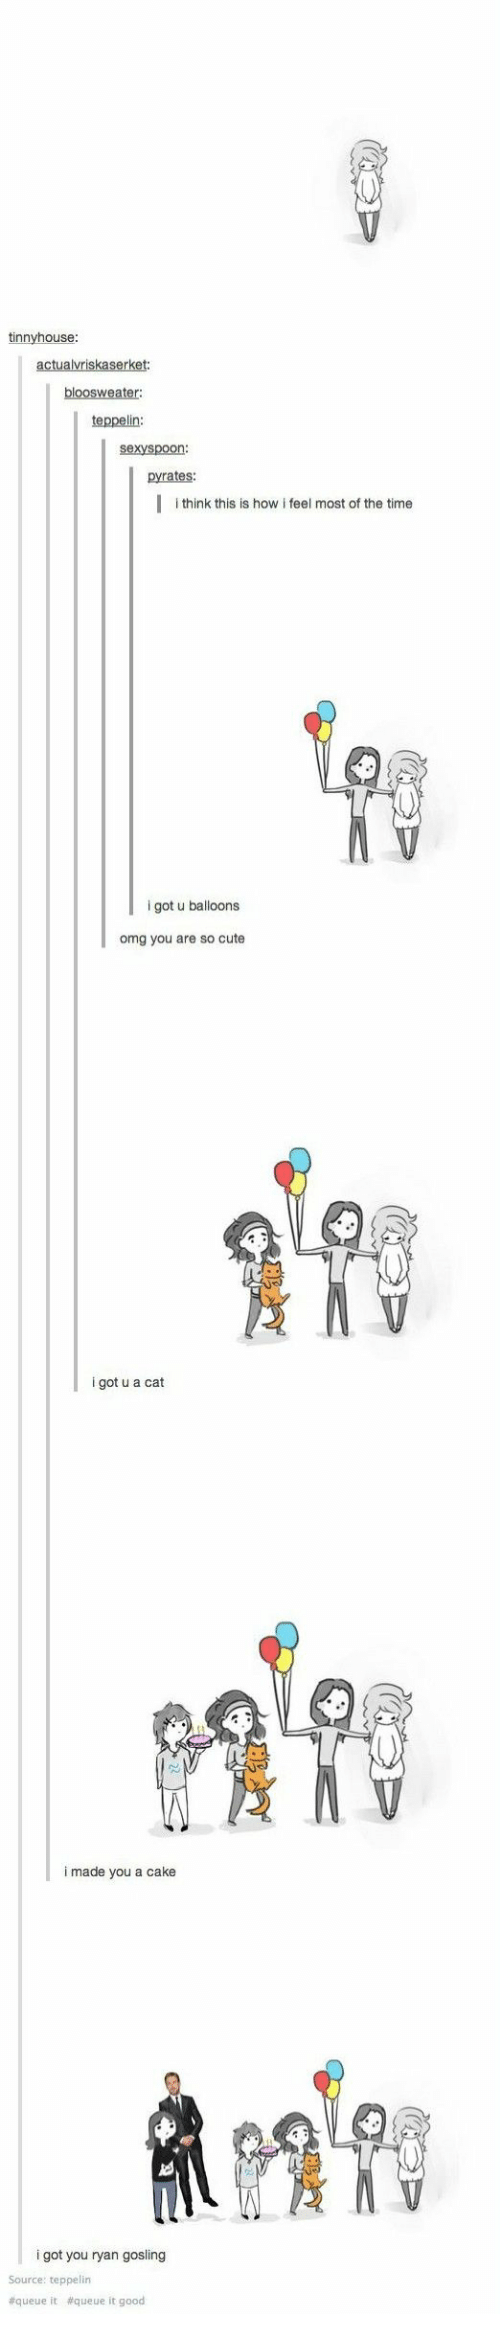 Ryan Gosling: tinnyhouse  teppelin:  sexyspoon:  pyrates:  |  think this is how i feel most of the time  i got u balloons  omg you are so cute  i got u a cat  i made you a cake  i got you ryan gosling  Source: teppelin  #queue it  queue it good